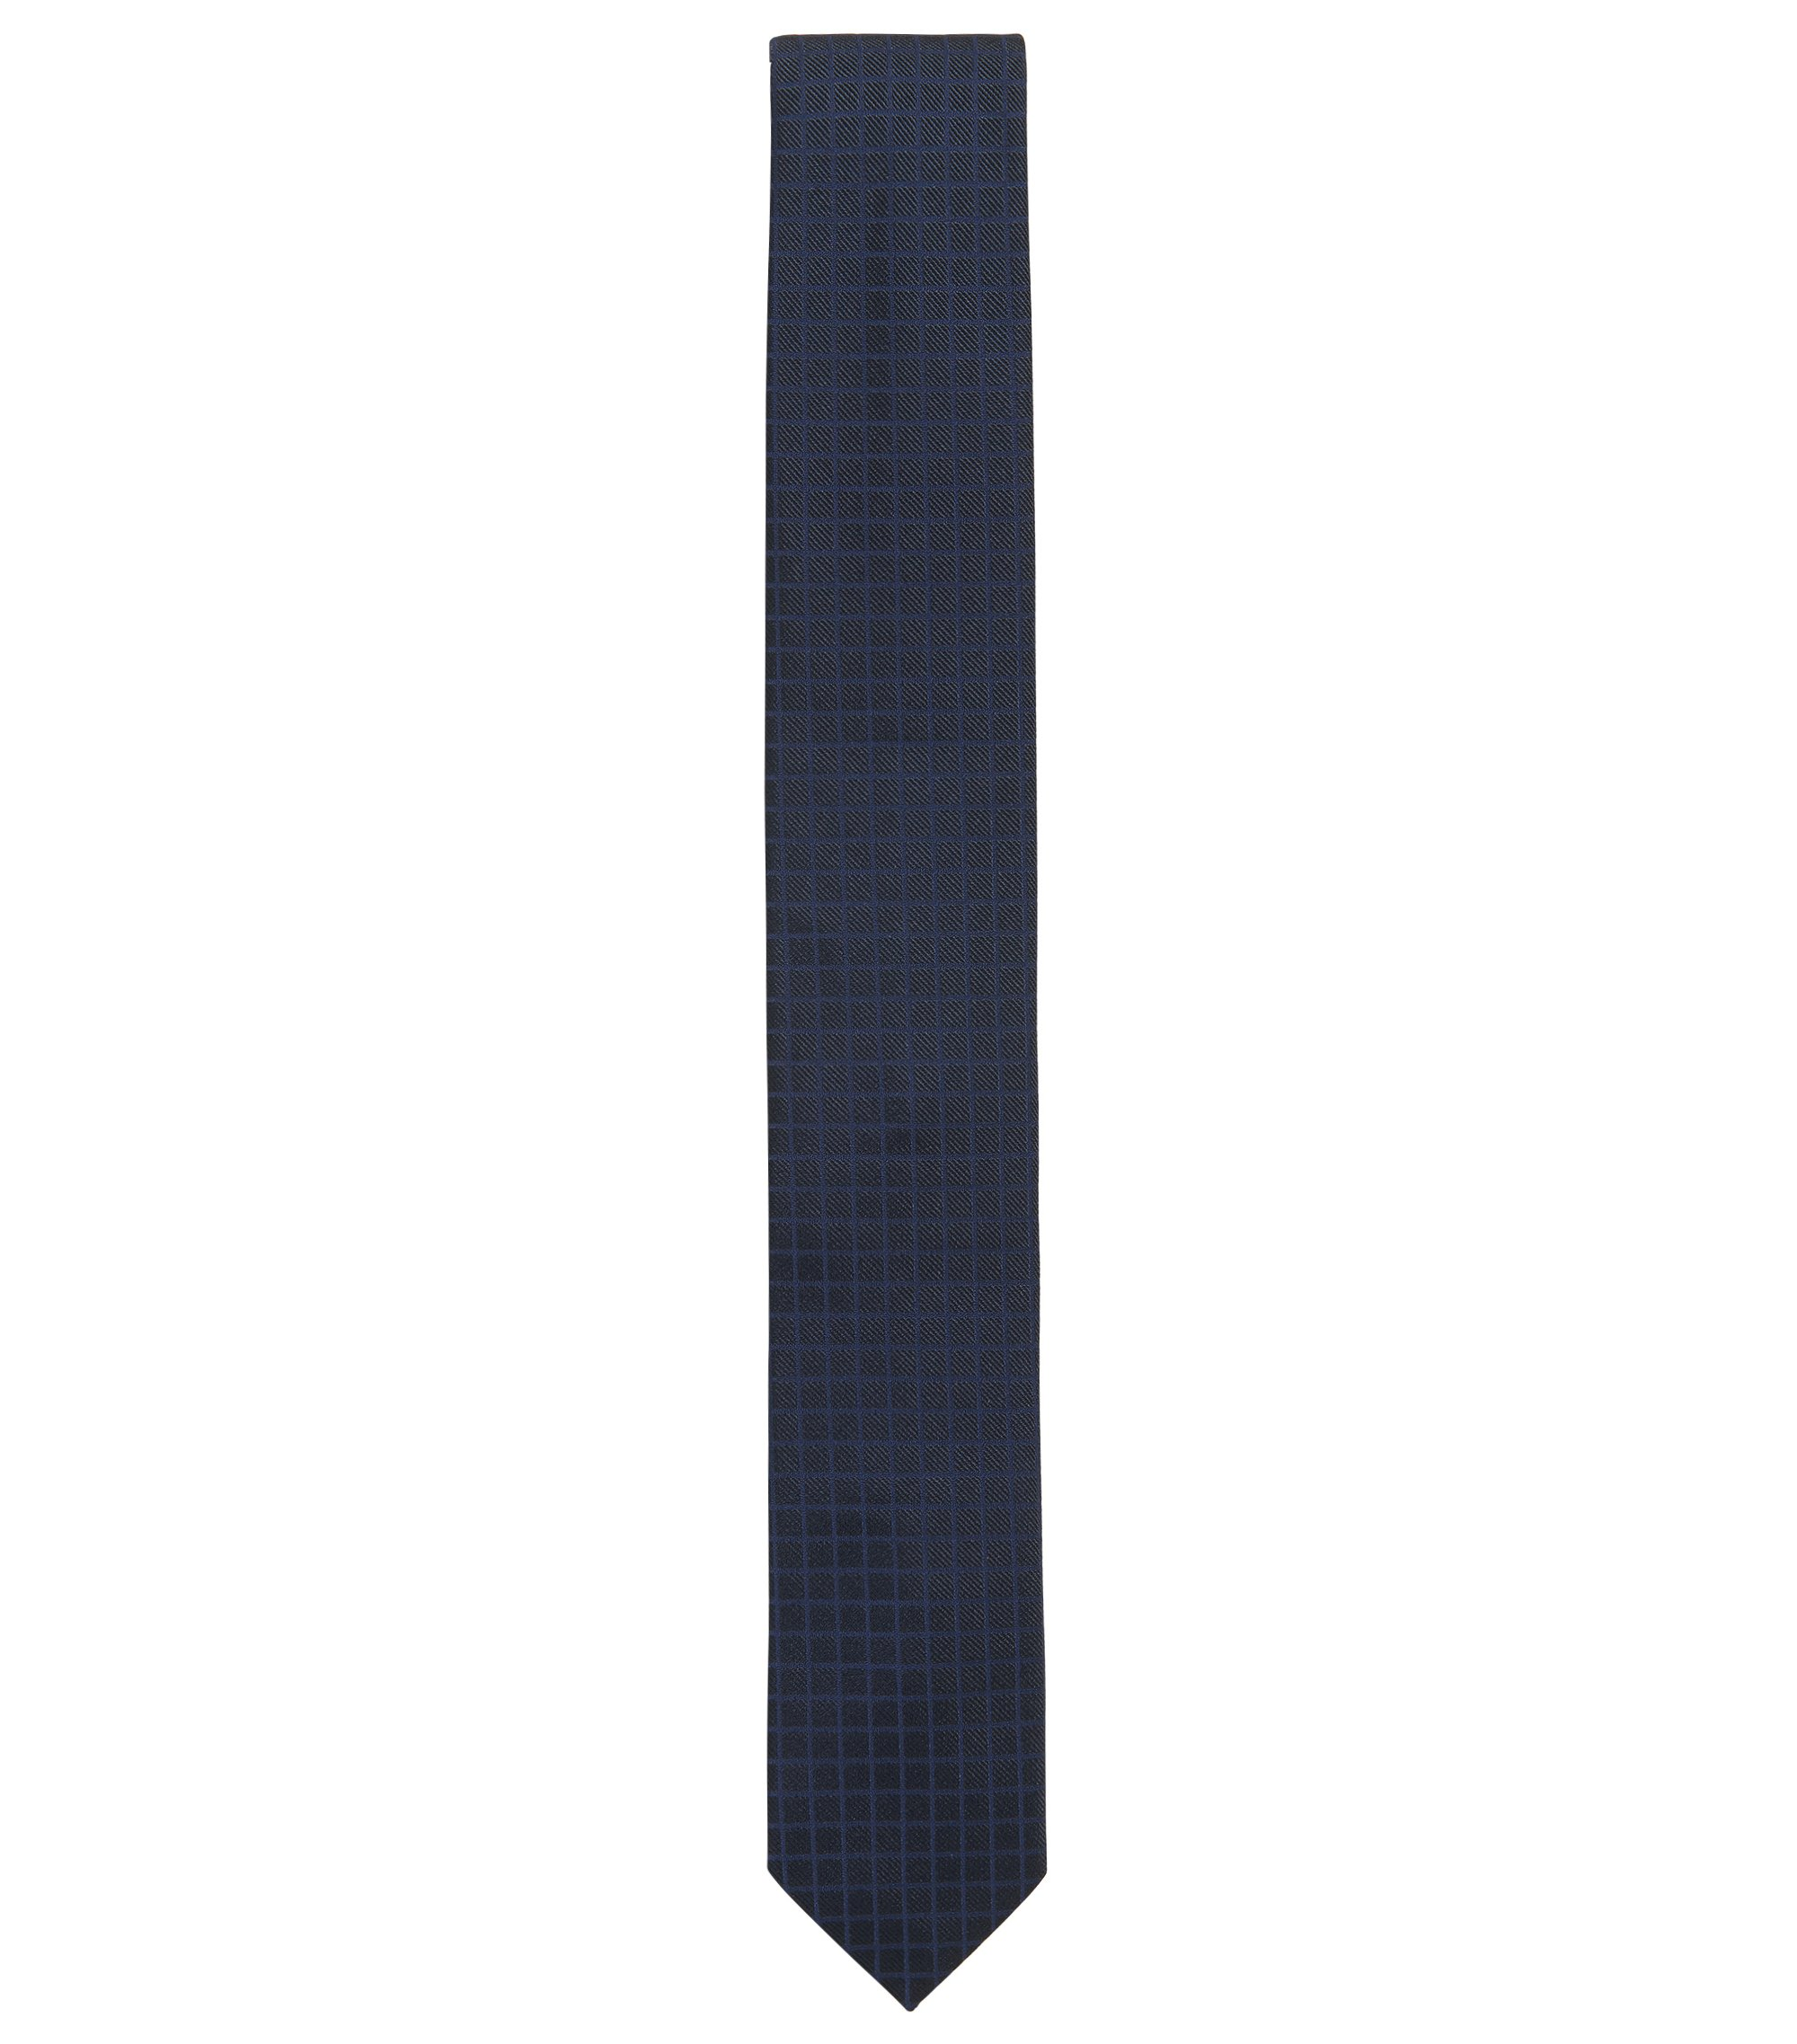 Square Embroidered Italian Silk Slim Tie, Dark Blue